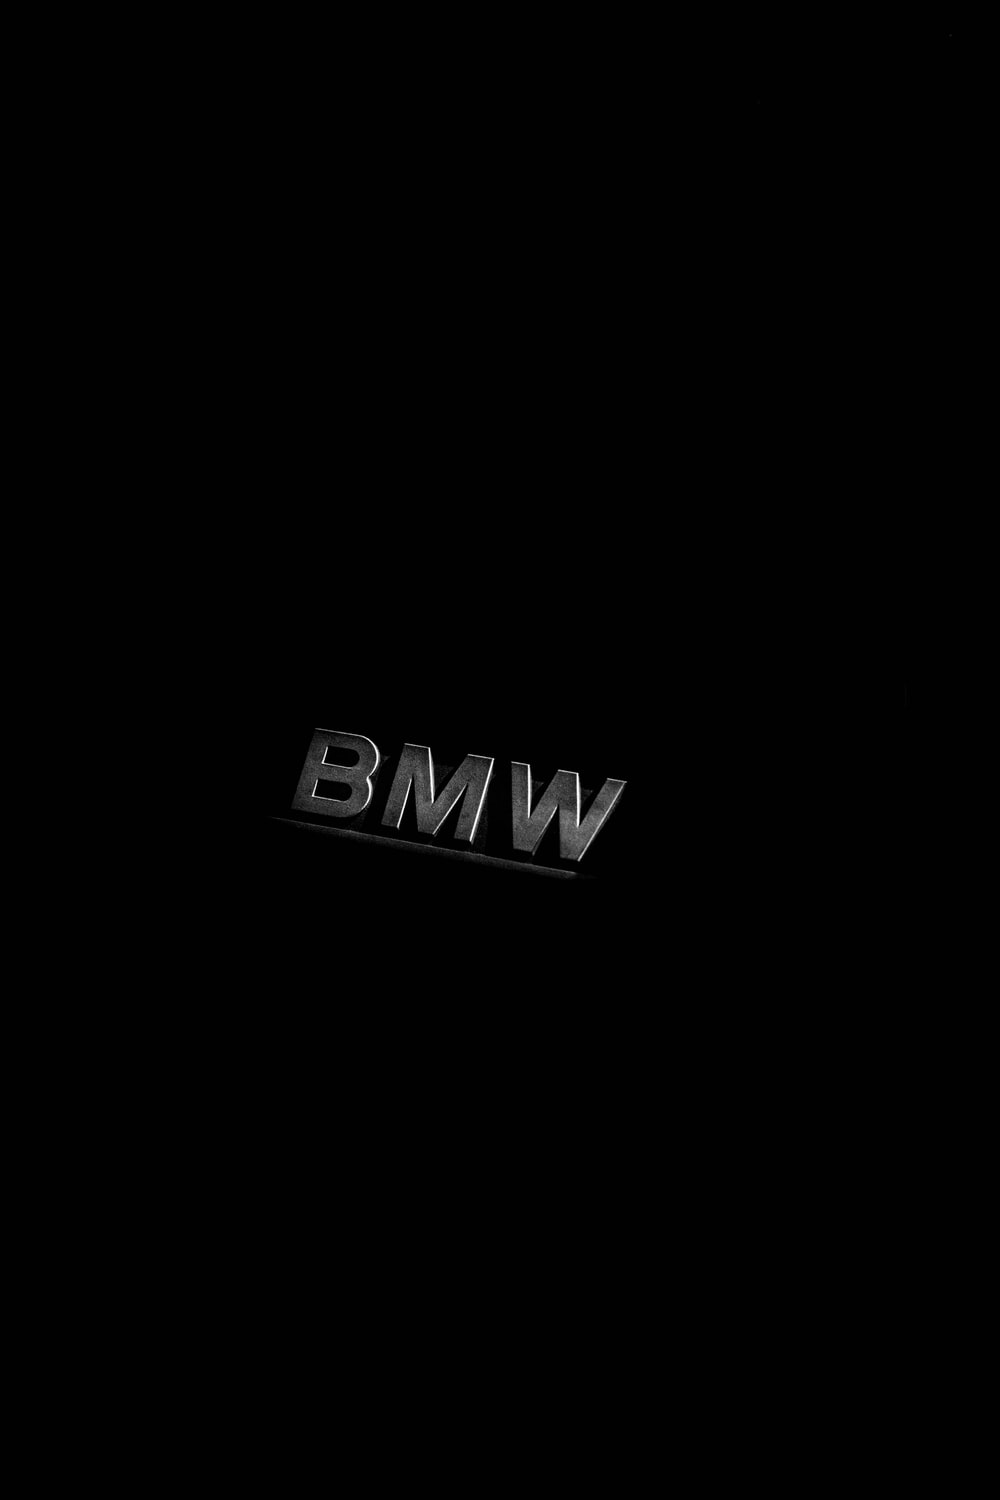 Grayscale Photography Of Bmw Emblem Photo Free Black And